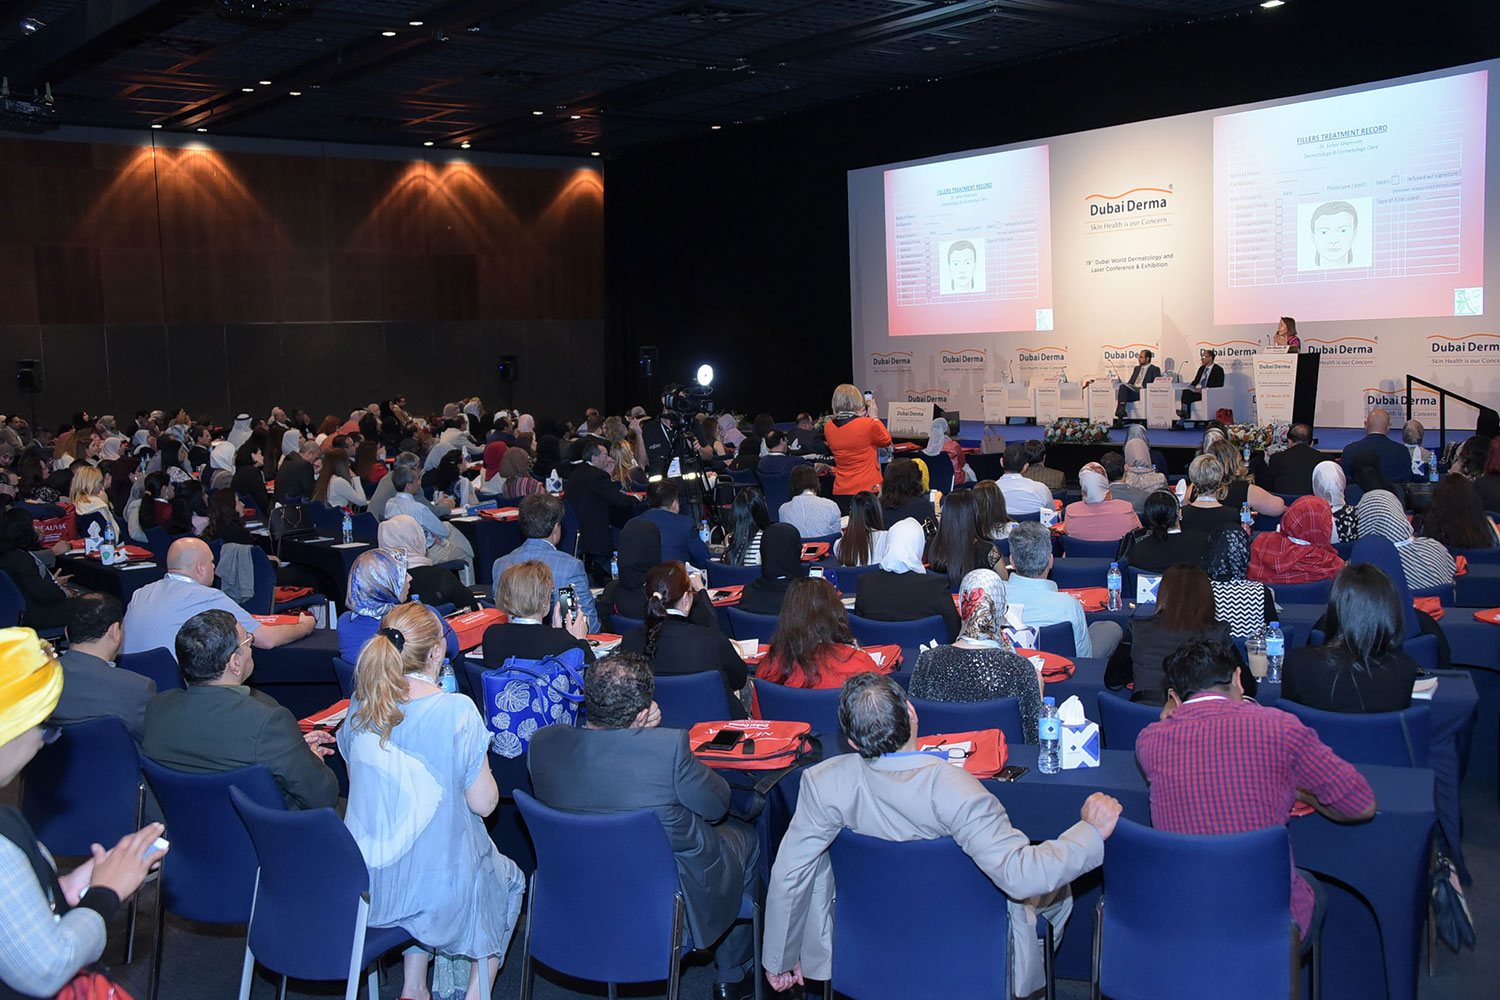 Dubai Derma 2019 Continued on the 2nd day